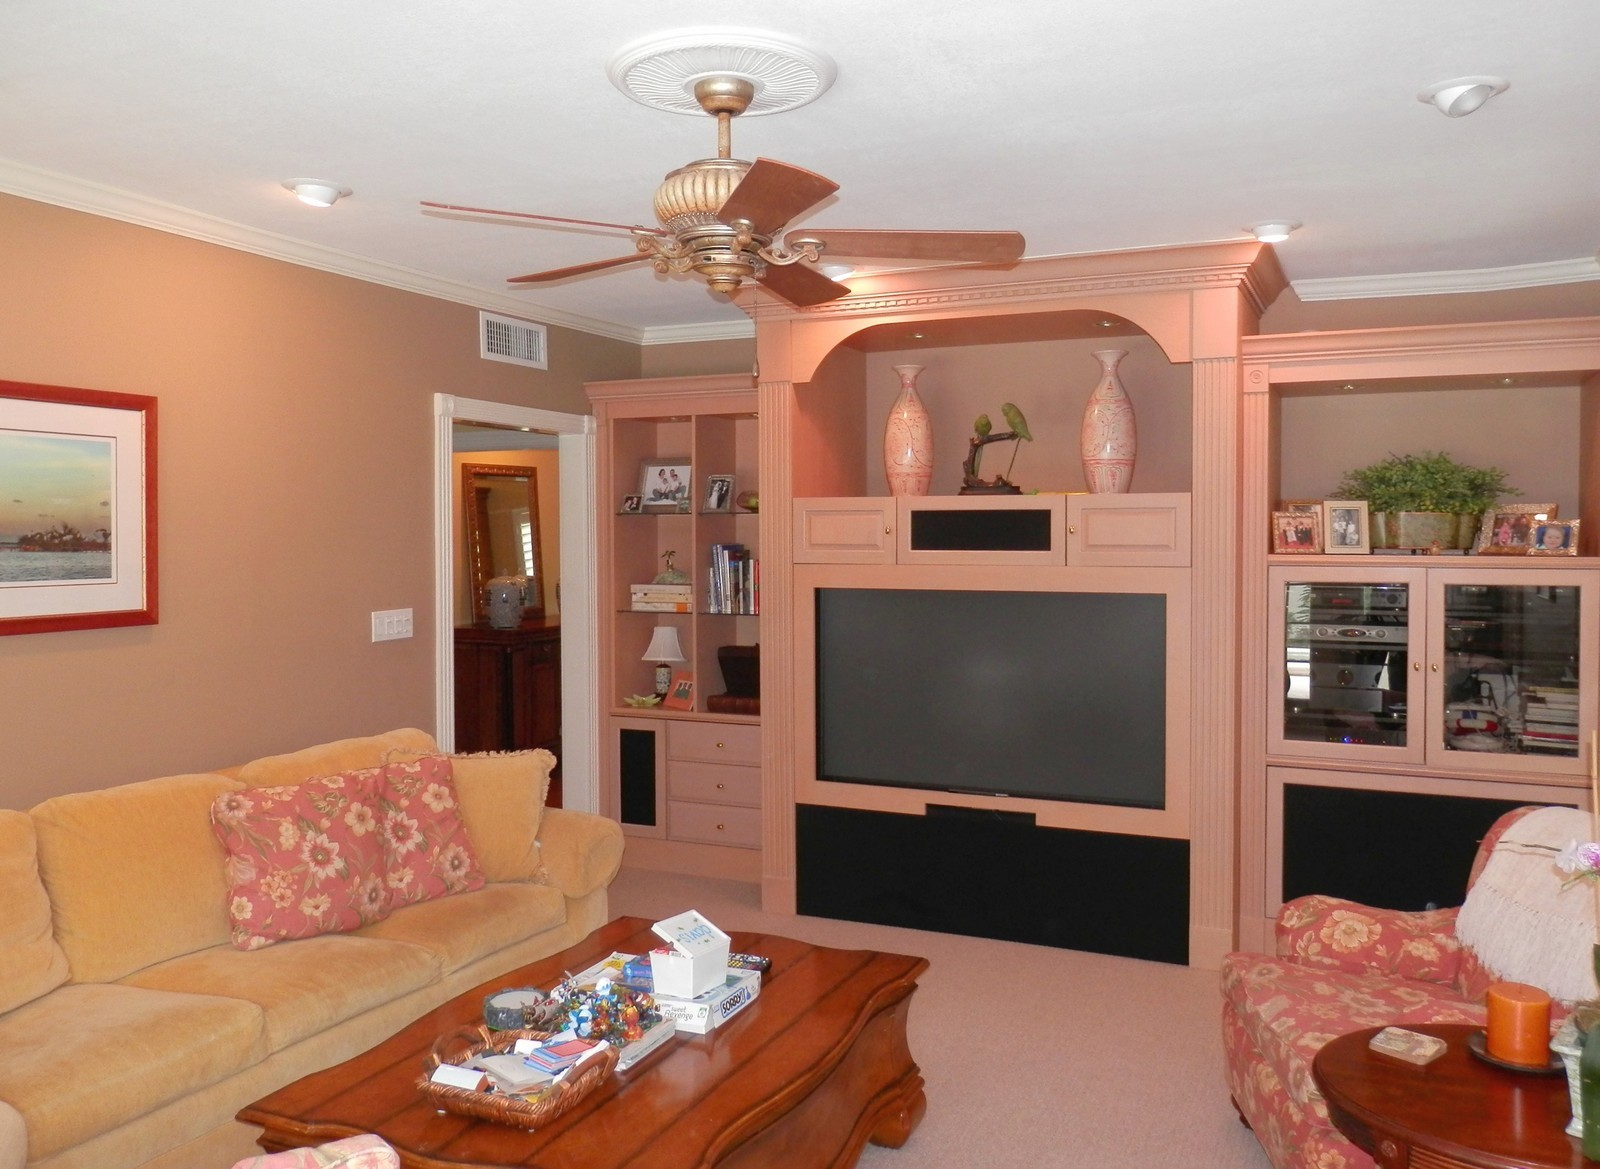 Real Estate Photography - 4922 New Providence Ave, Tampa, FL, 33629 - Family Room